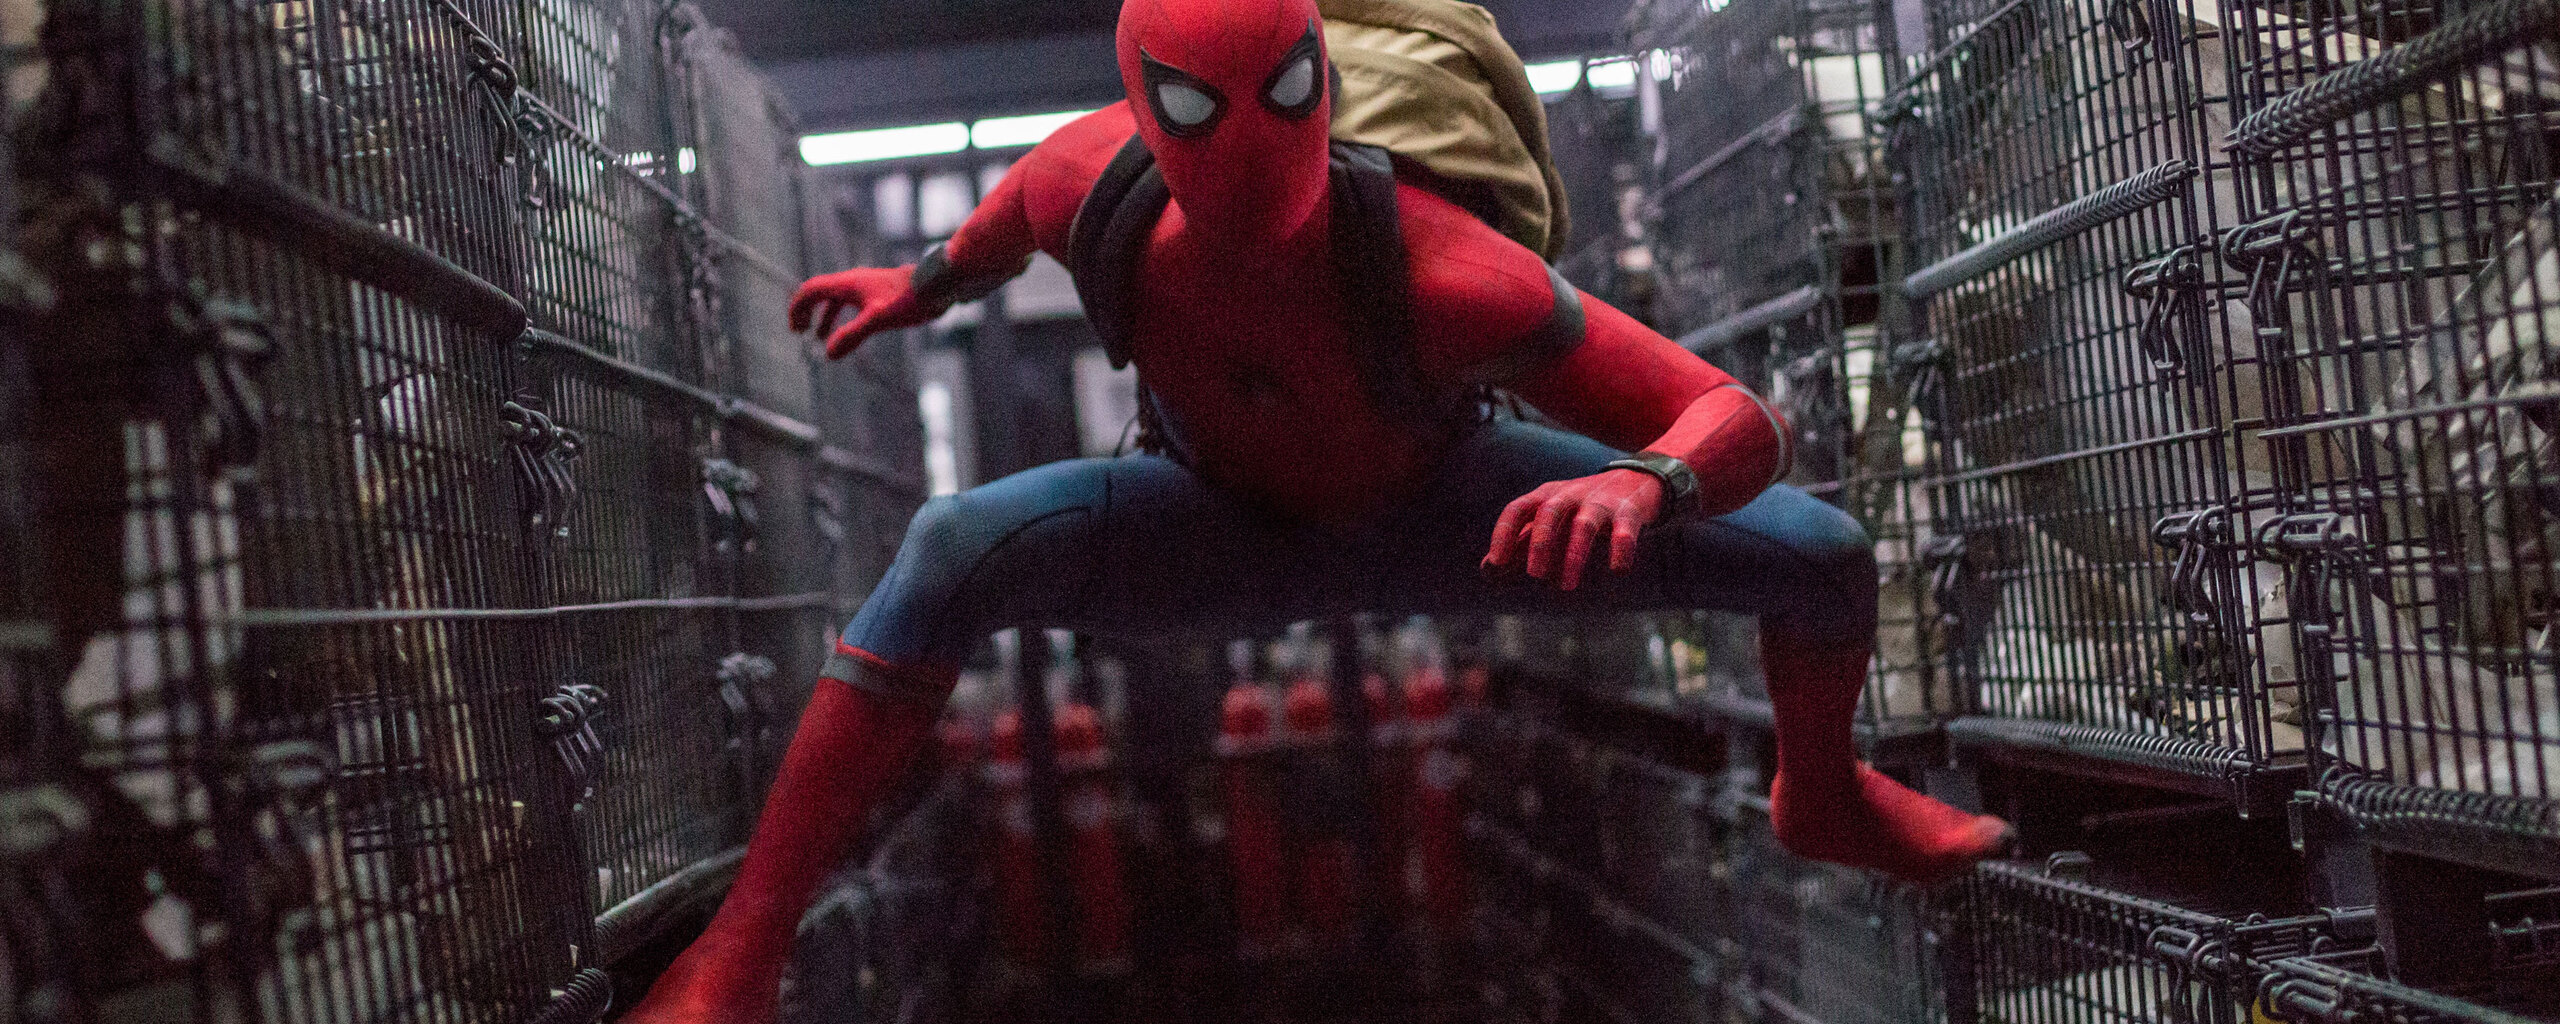 spider-man-homecoming-img.jpg